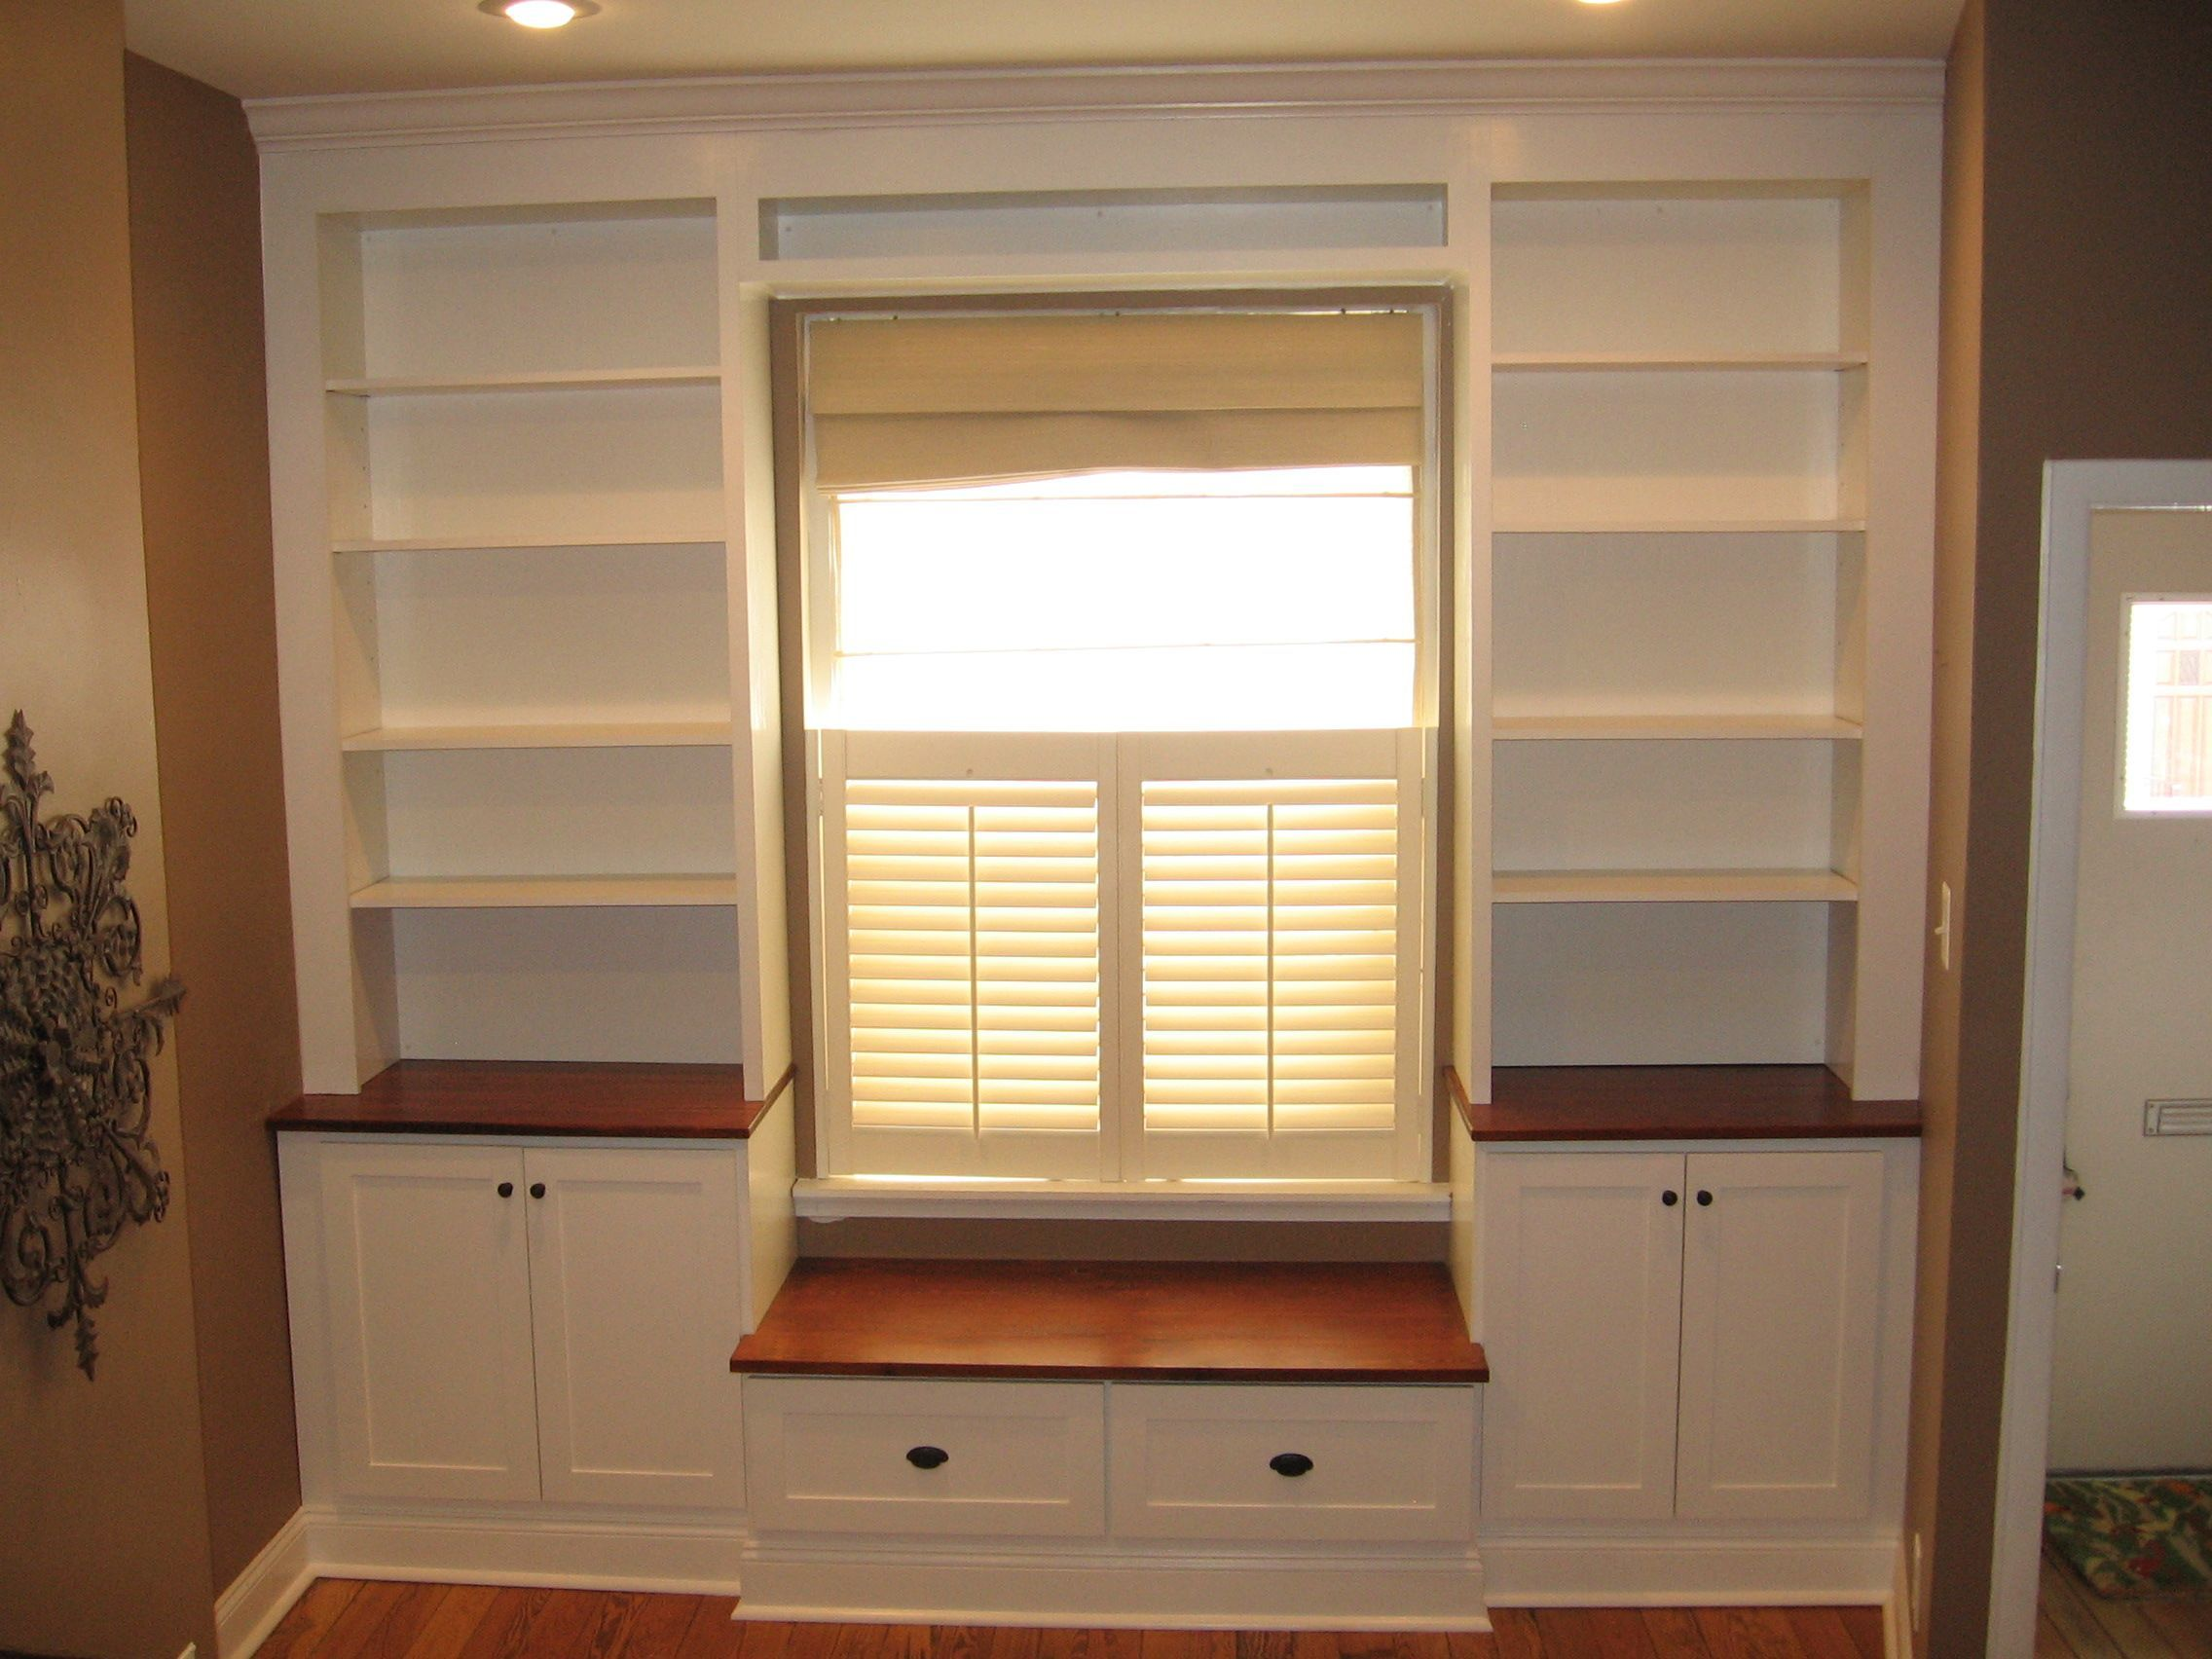 Built in around window with bench seat create toy storage in bench